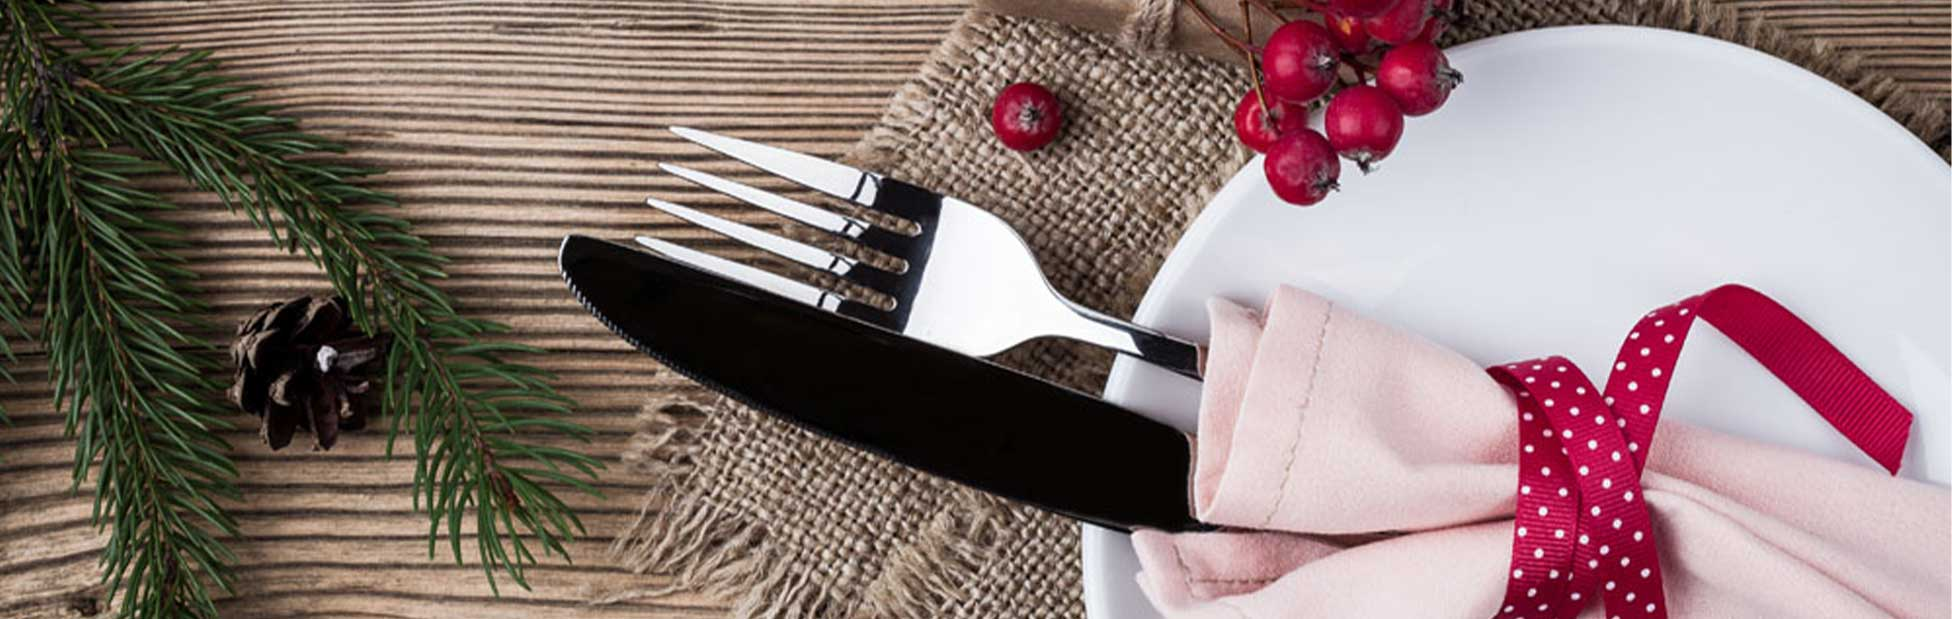 Christmas styled table and cutlery